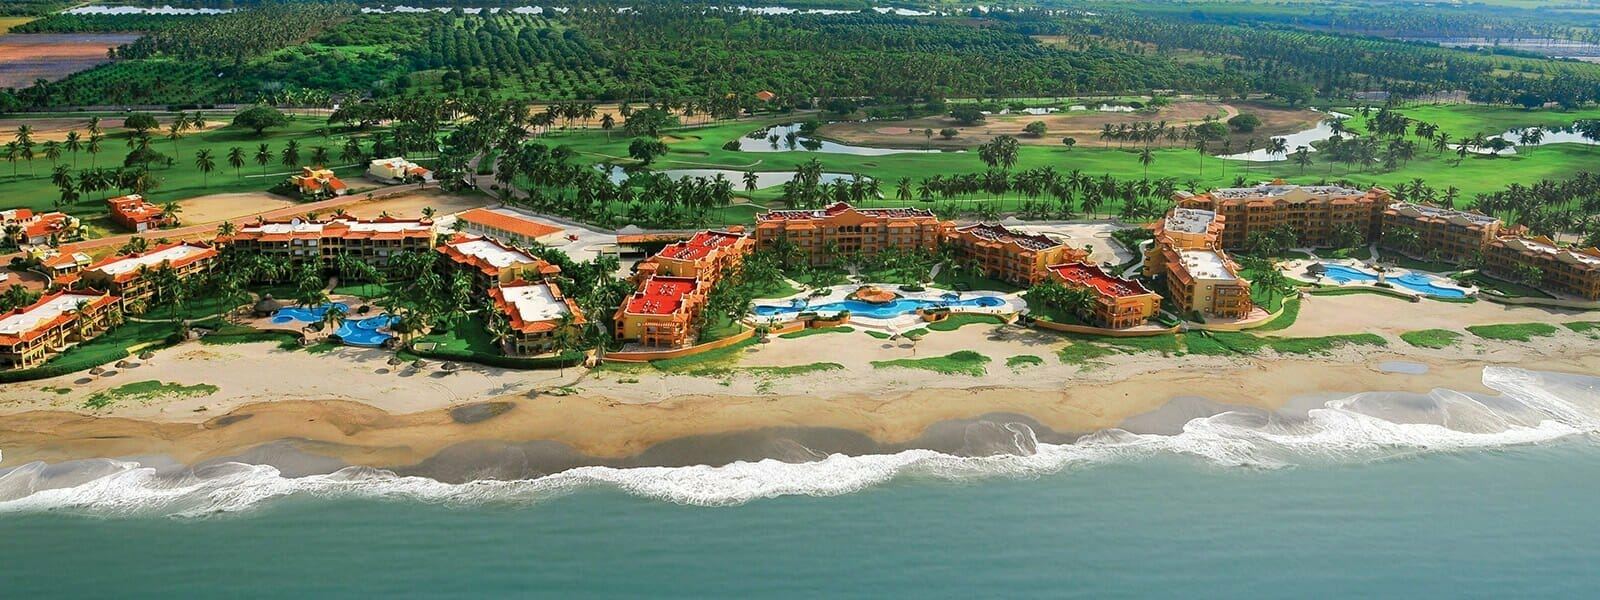 Estrella del Mar Beach Resort | Buy or Rent Beachfront Condos Mexico